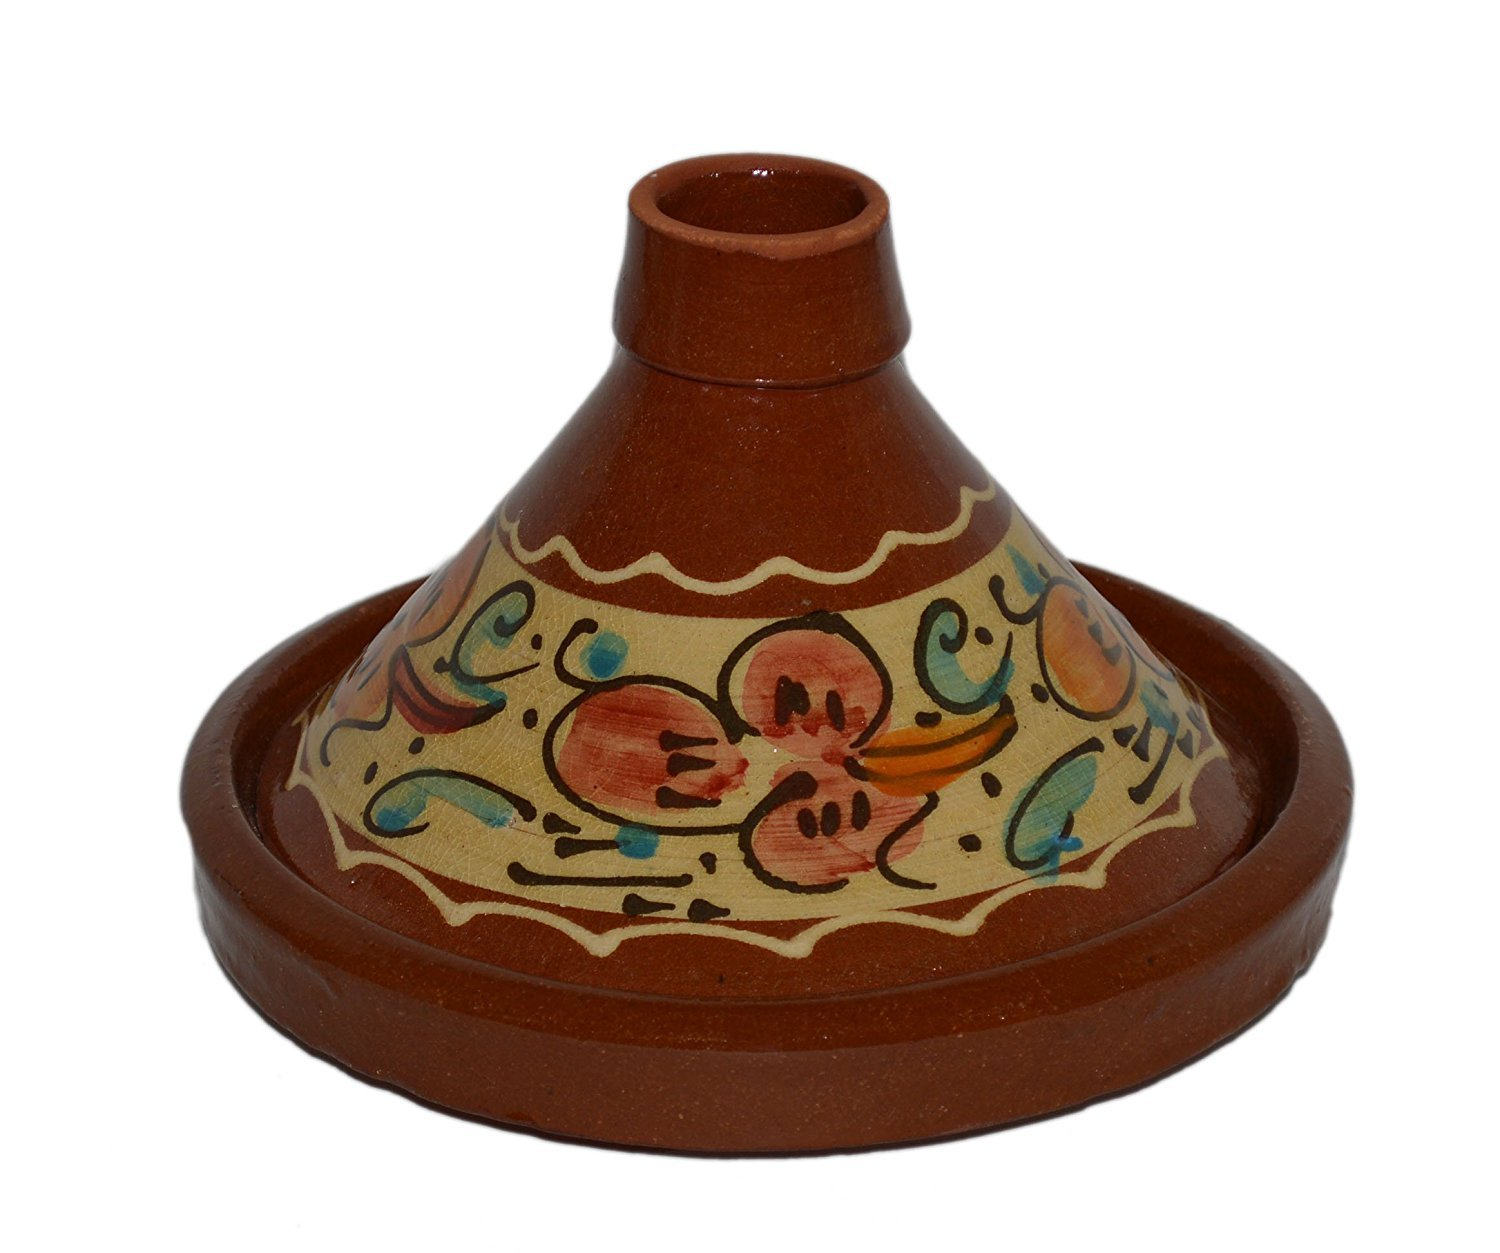 Moroccan Cooking Tagine Small Clay Tajine Pot by Cooking Tagines Treasure Of Morocco COMINHKR047985